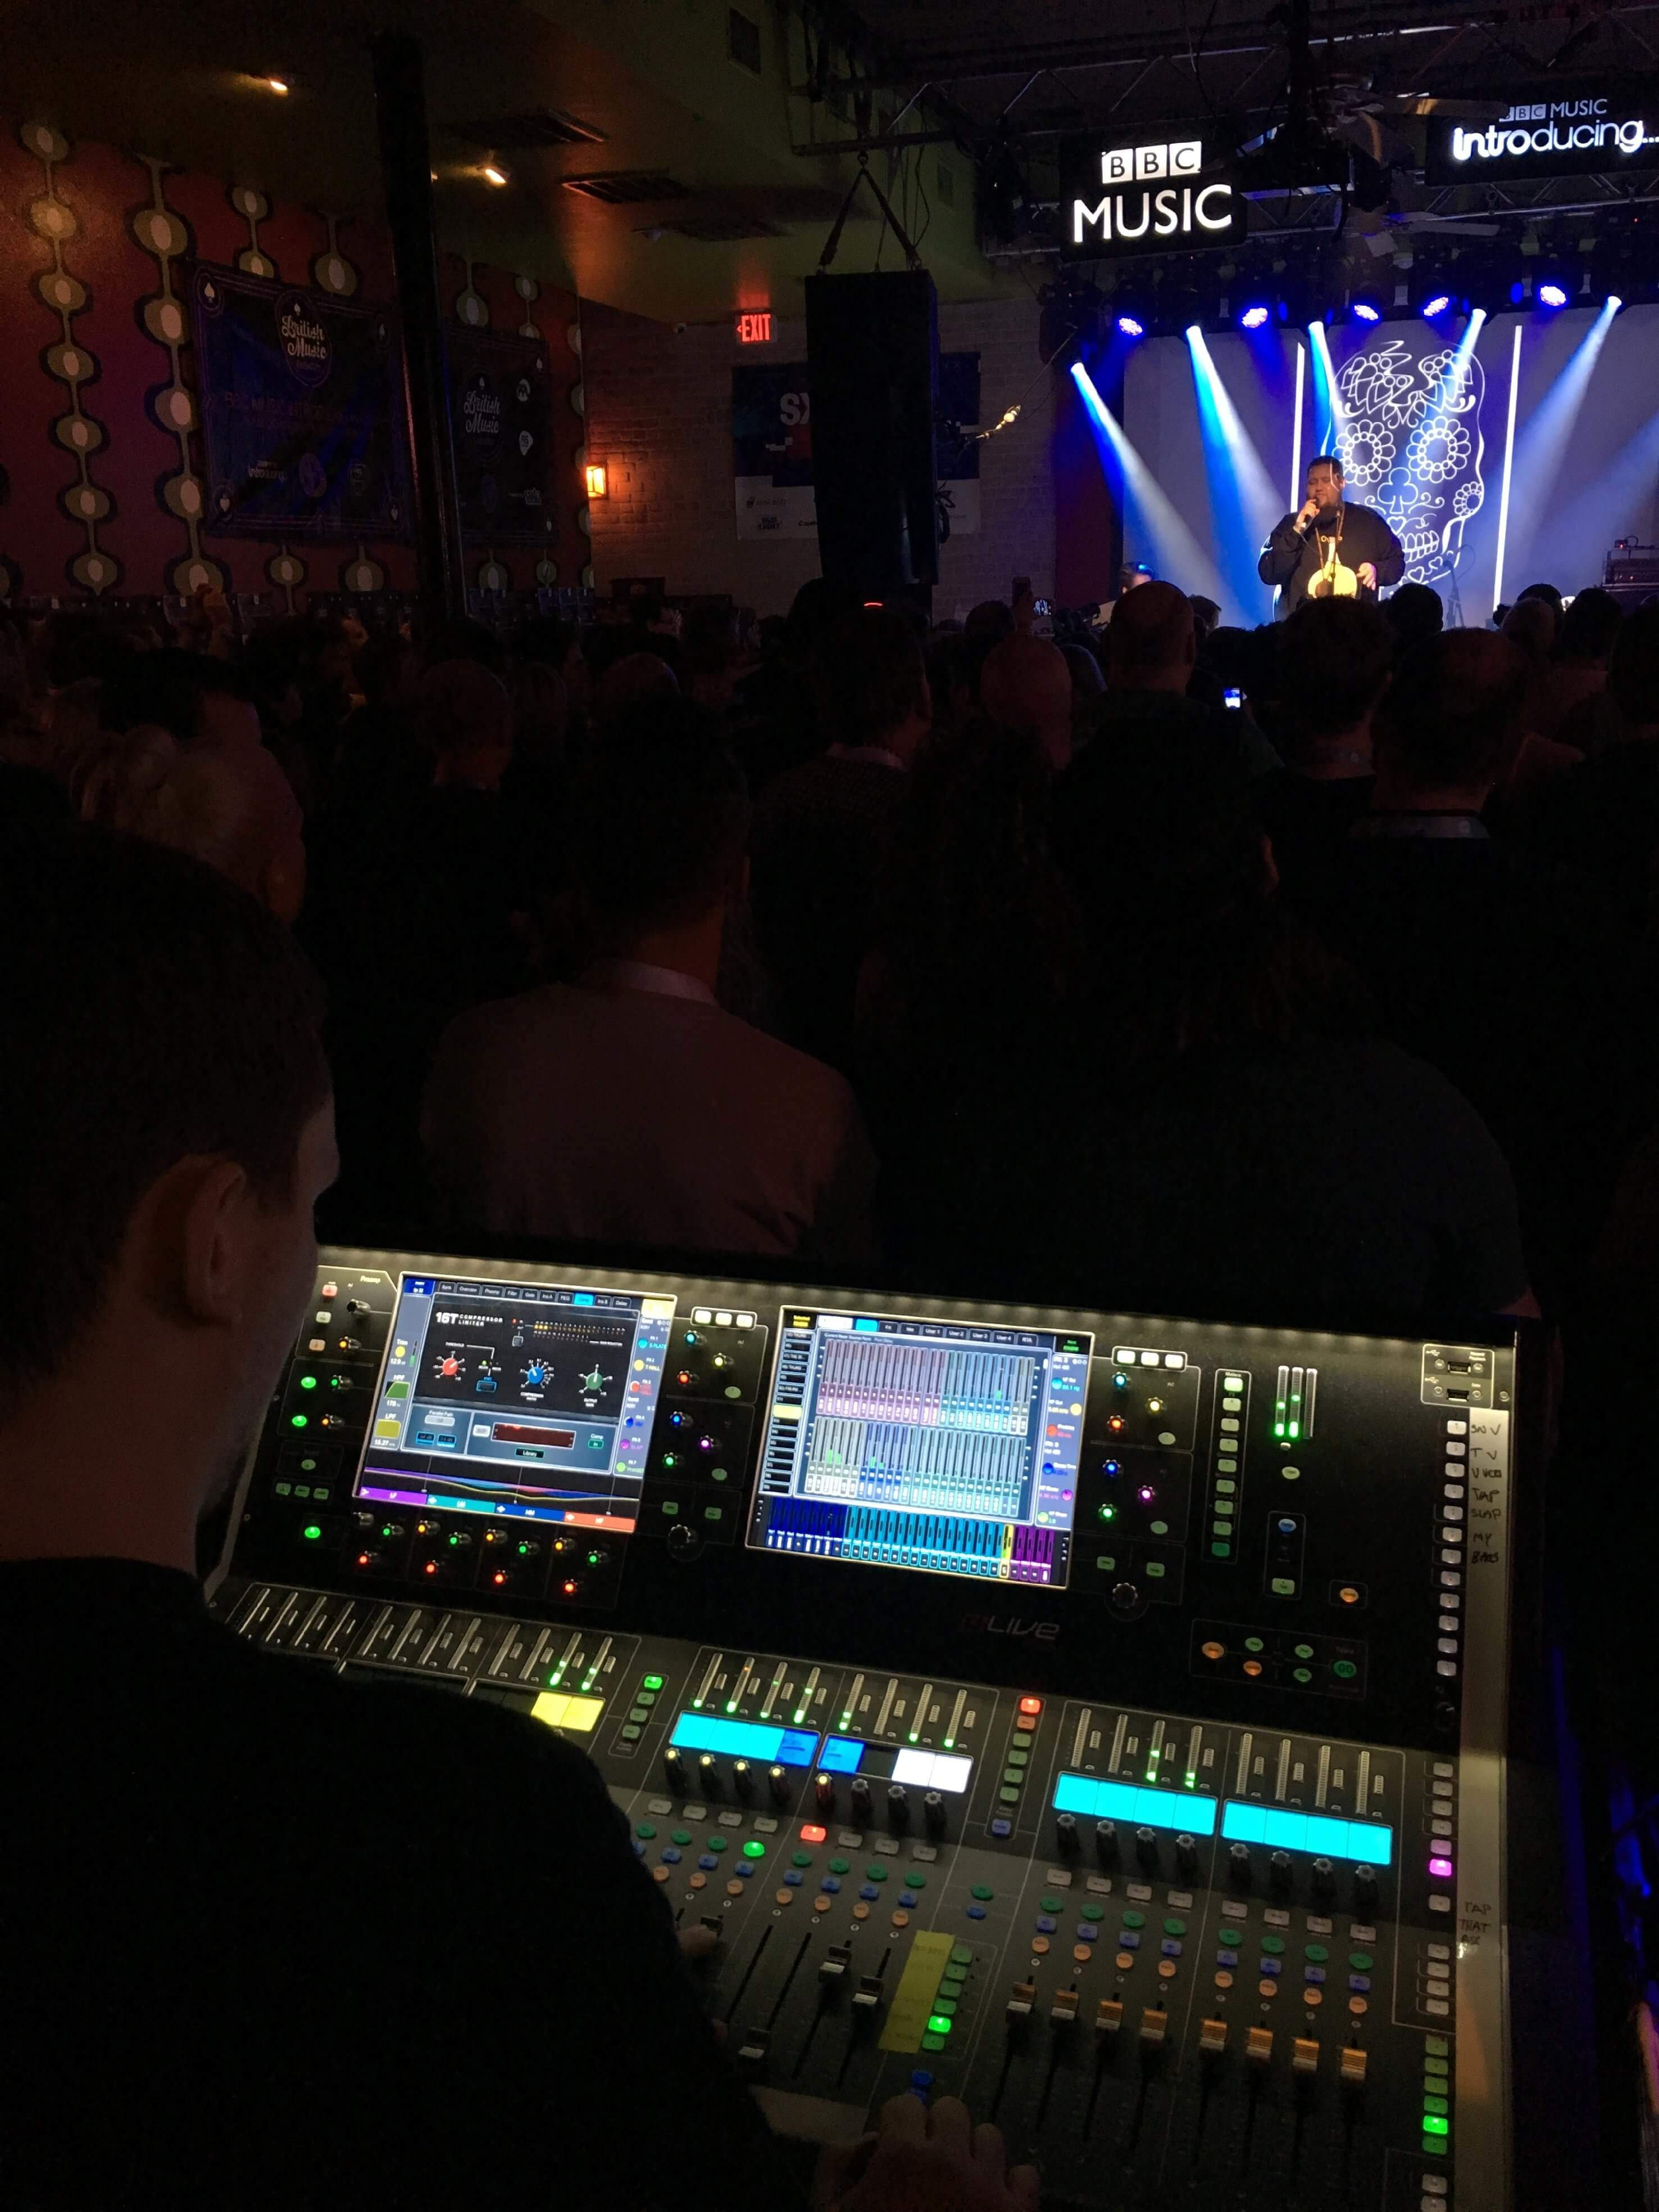 Allen & Heath digital mixers were once again at the forefront of this year's South by Southwest Music and Media Conference (SXSW) in Austin, Texas, USA.